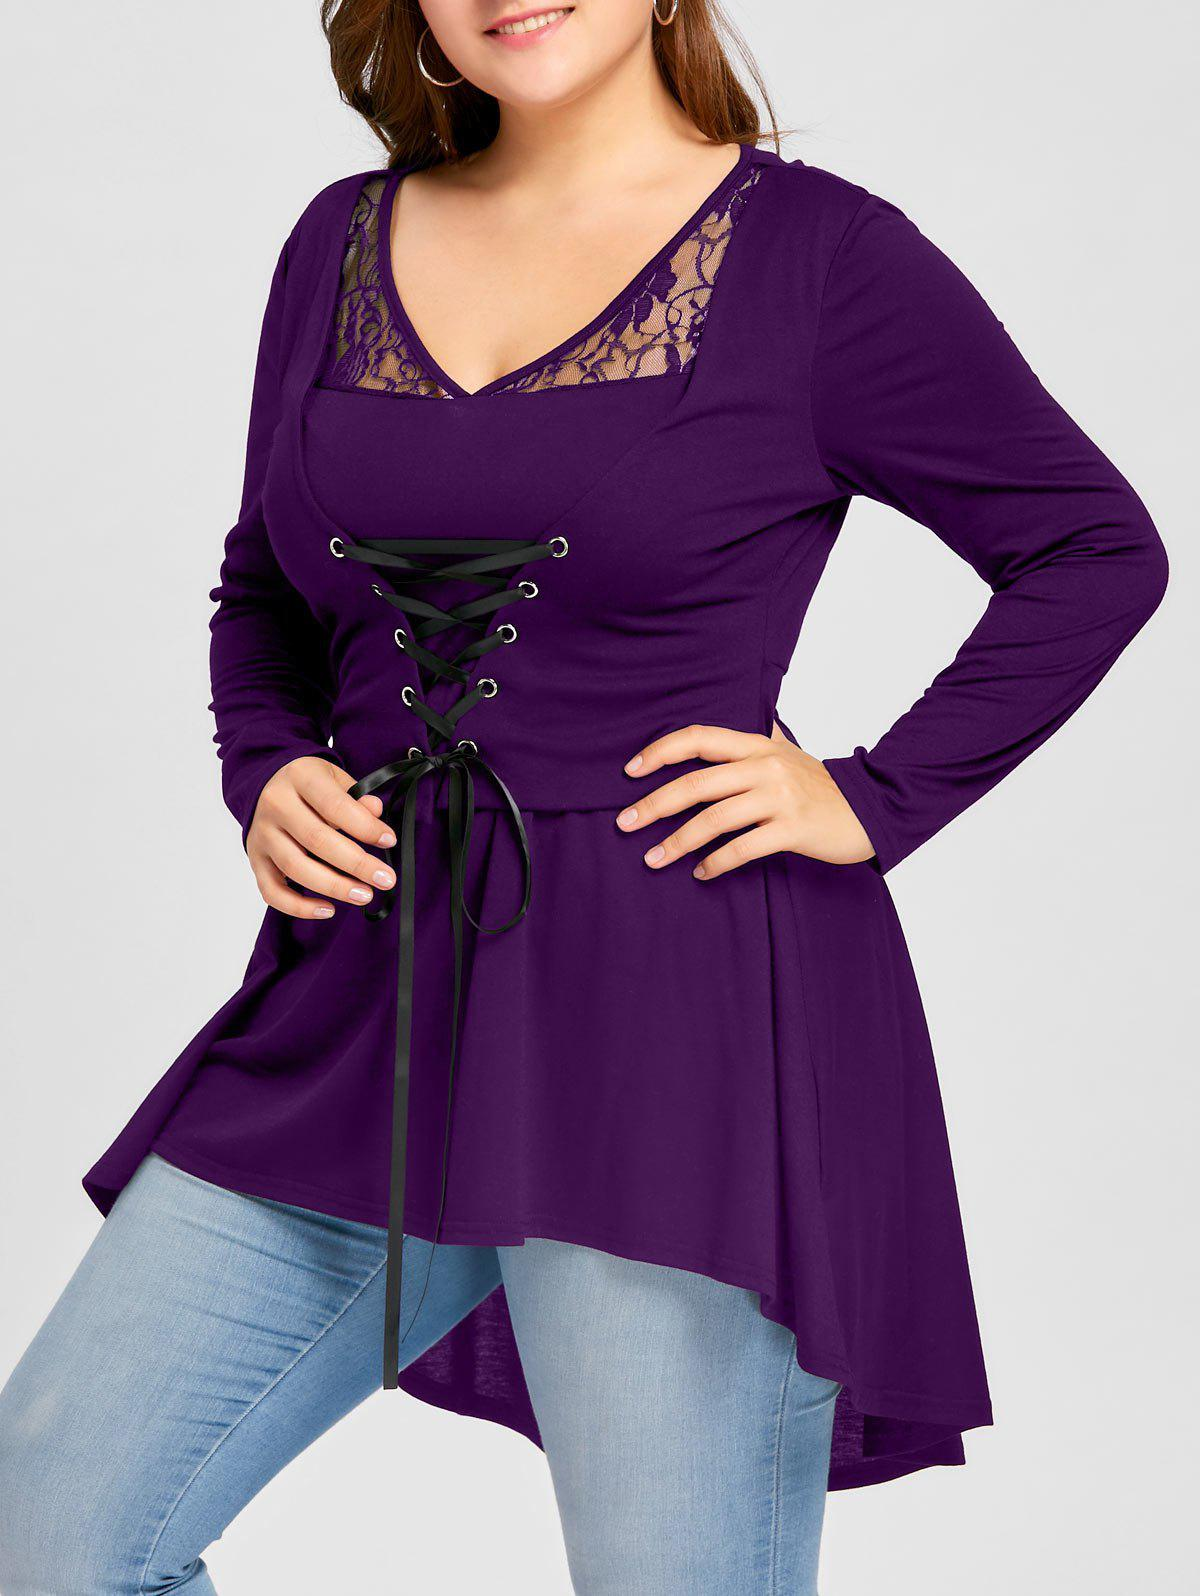 Plus Size Lace Up High Low Gothic TopWOMEN<br><br>Size: 2XL; Color: PURPLE; Material: Polyester,Spandex; Shirt Length: Long; Sleeve Length: Full; Collar: V-Neck; Style: Gothic; Season: Fall,Spring; Embellishment: Lace; Pattern Type: Solid; Weight: 0.3700kg; Package Contents: 1 x Top;